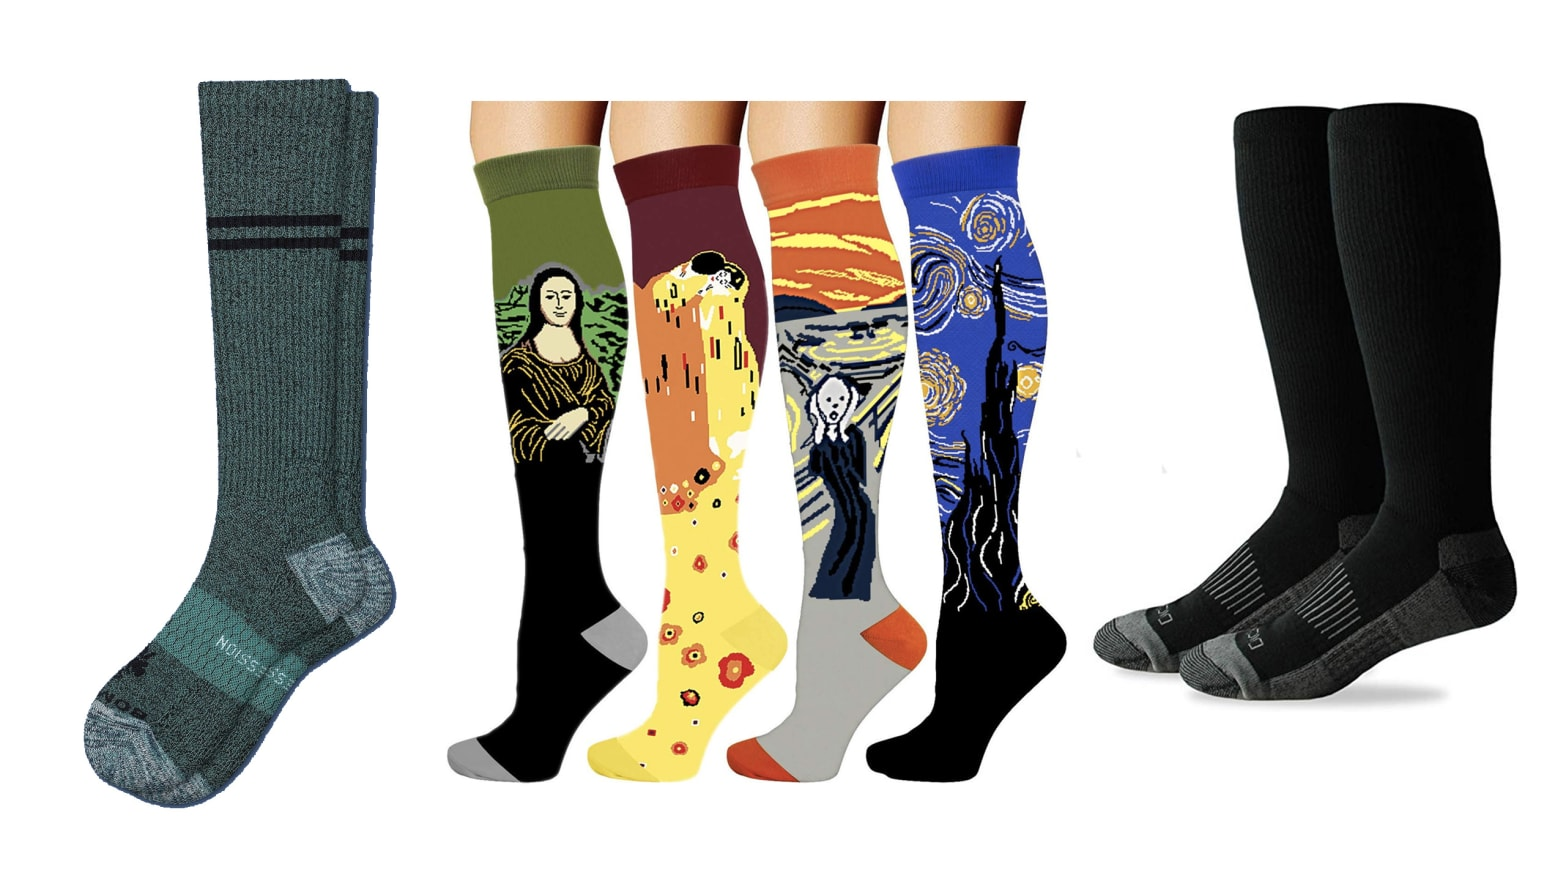 The Best Compression Socks for a Healthier Lifestyle